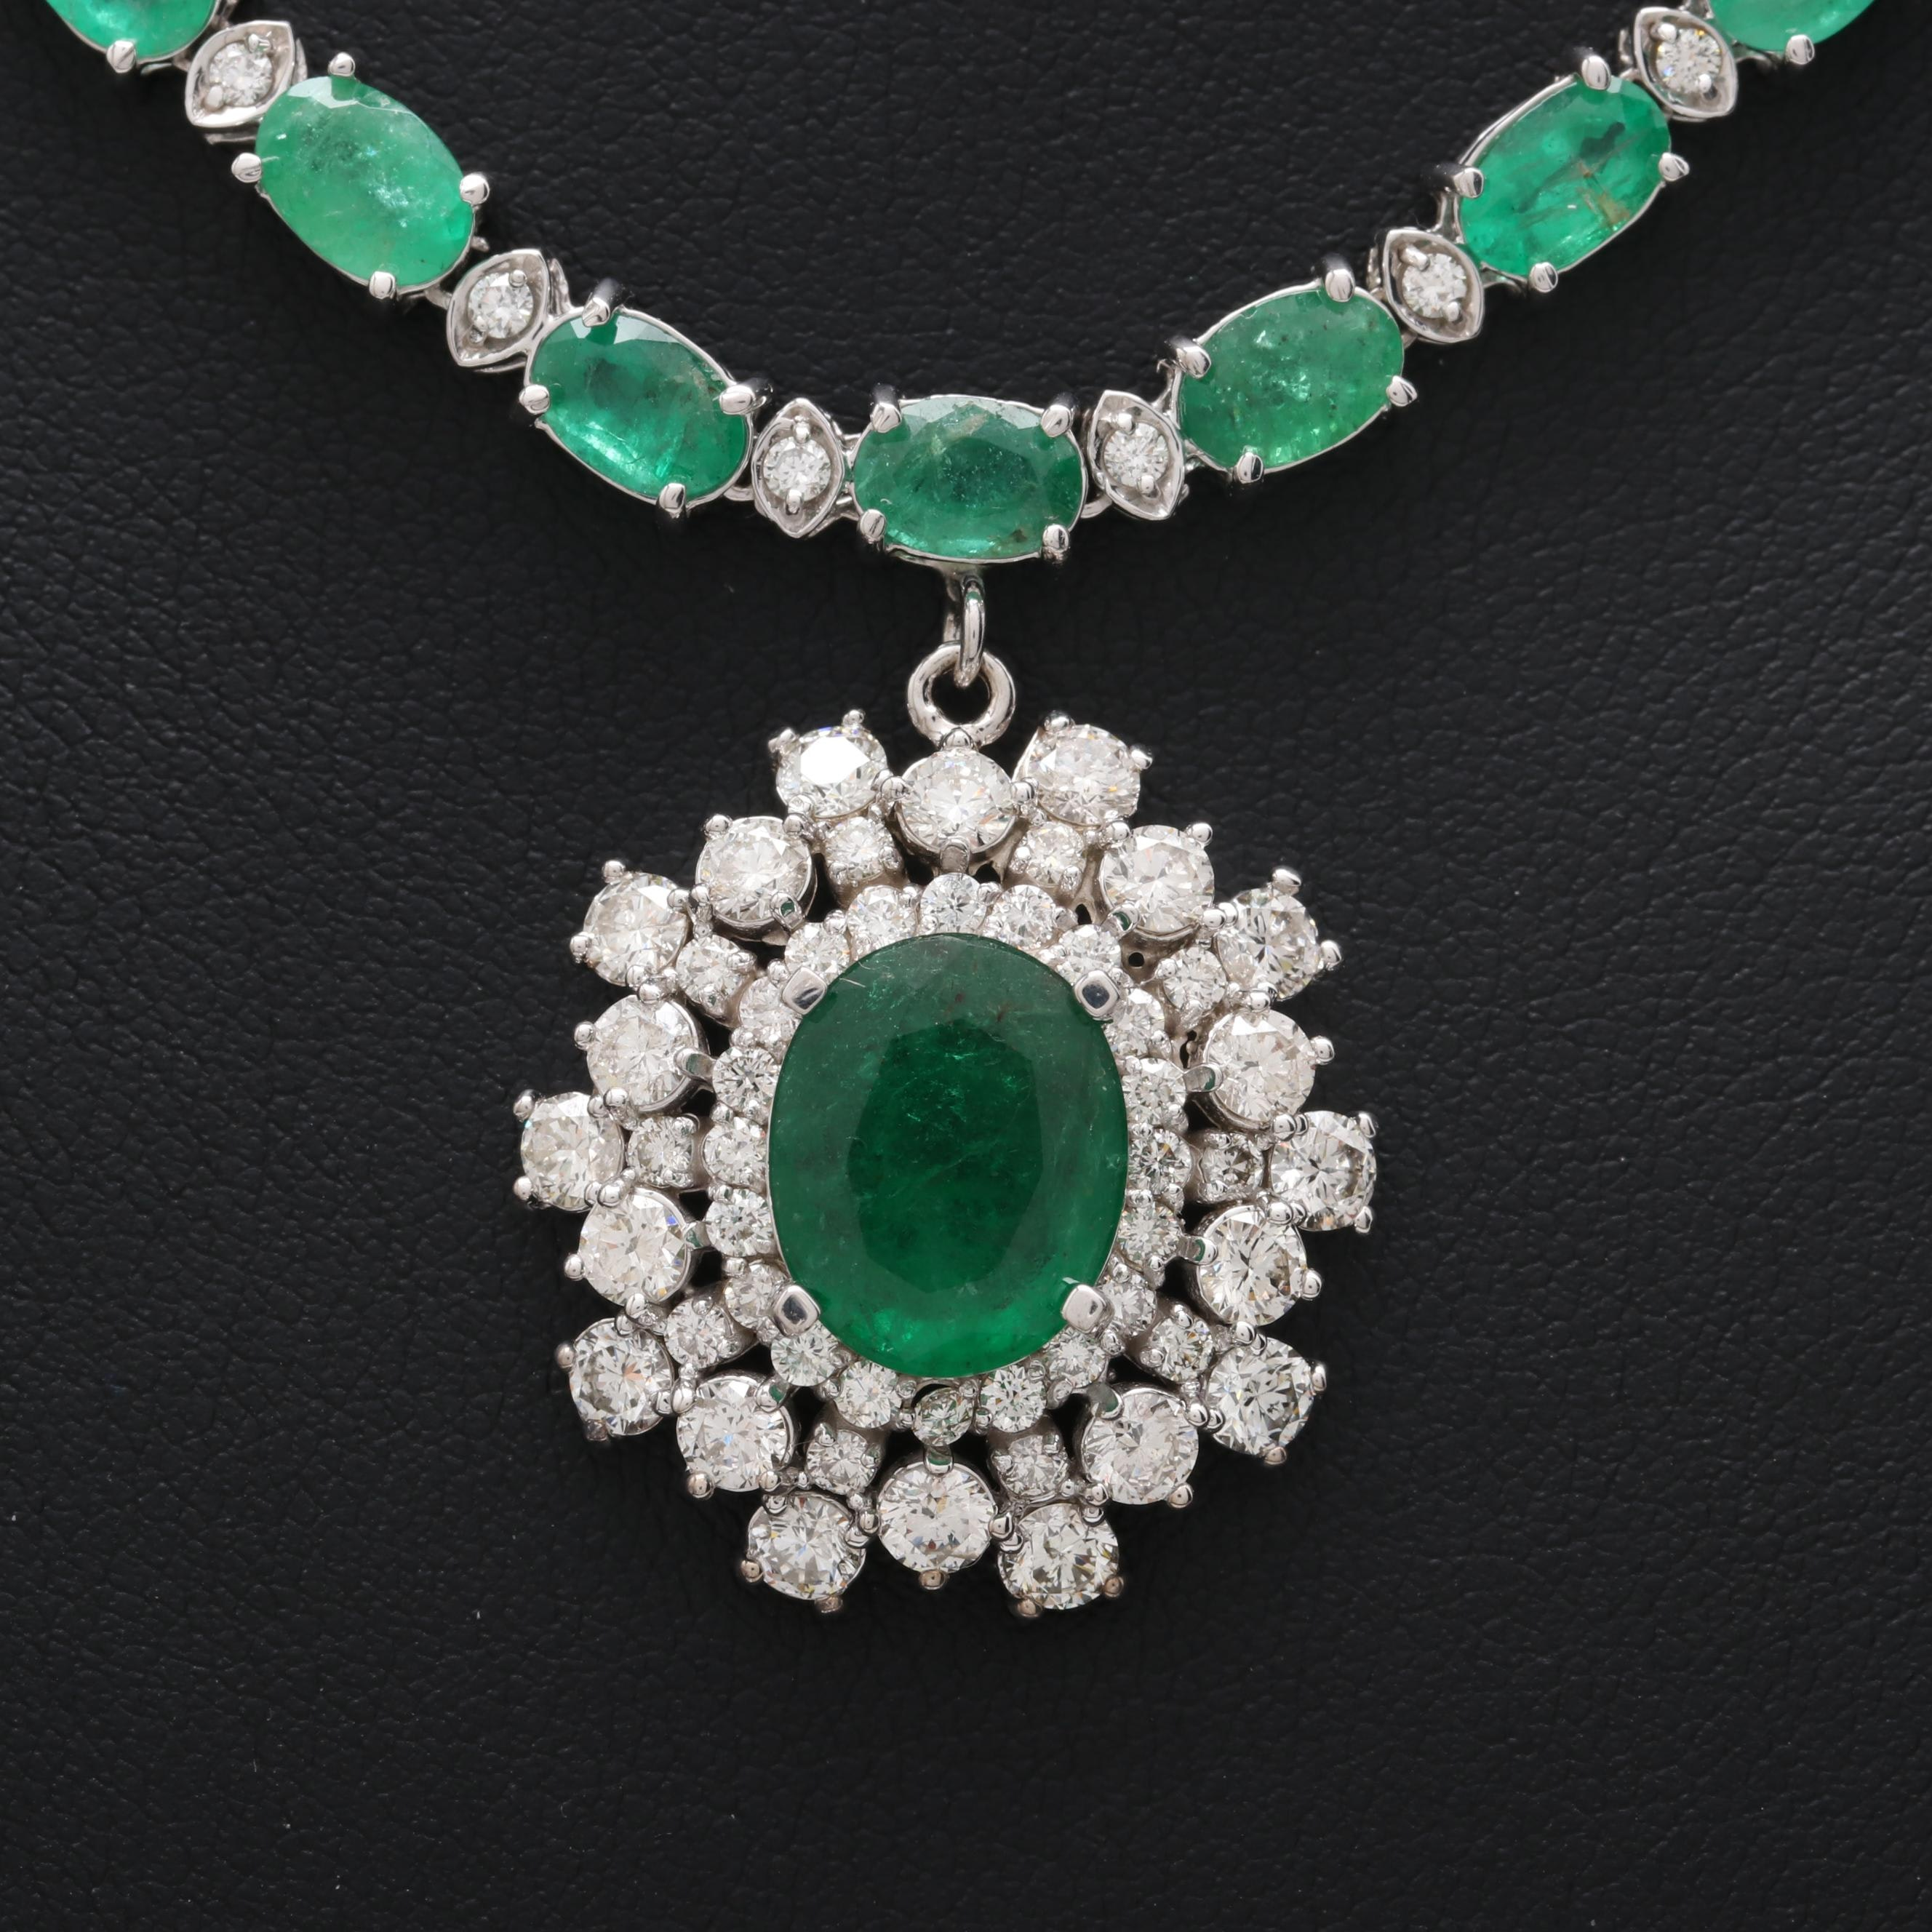 14K White Gold 2.31 CT Center Emerald and 3.72 CTW Diamond Necklace